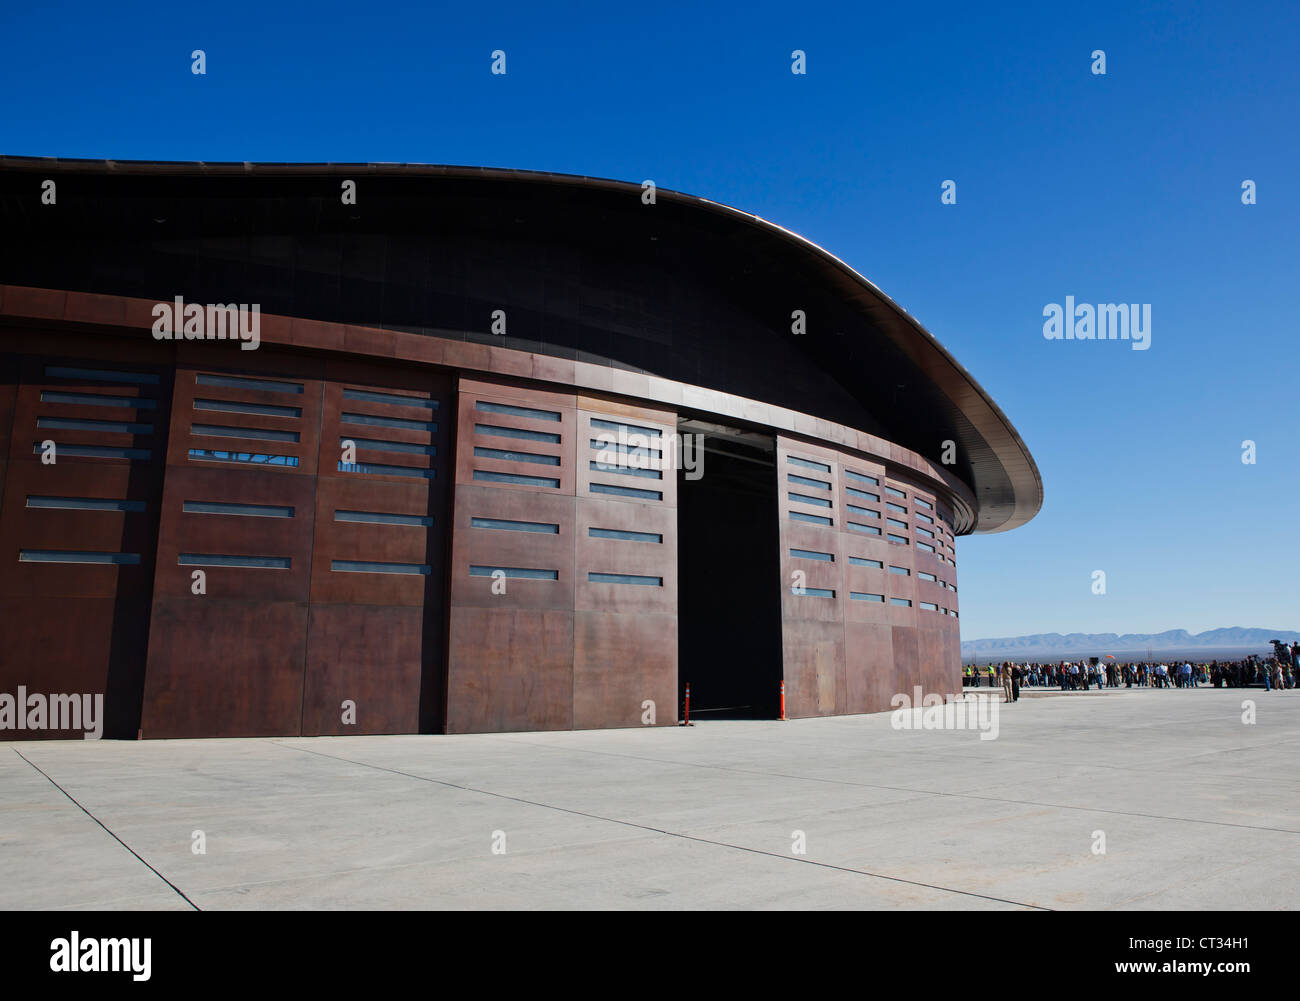 Vigin Galatic Gateway spaceport building - Stock Image